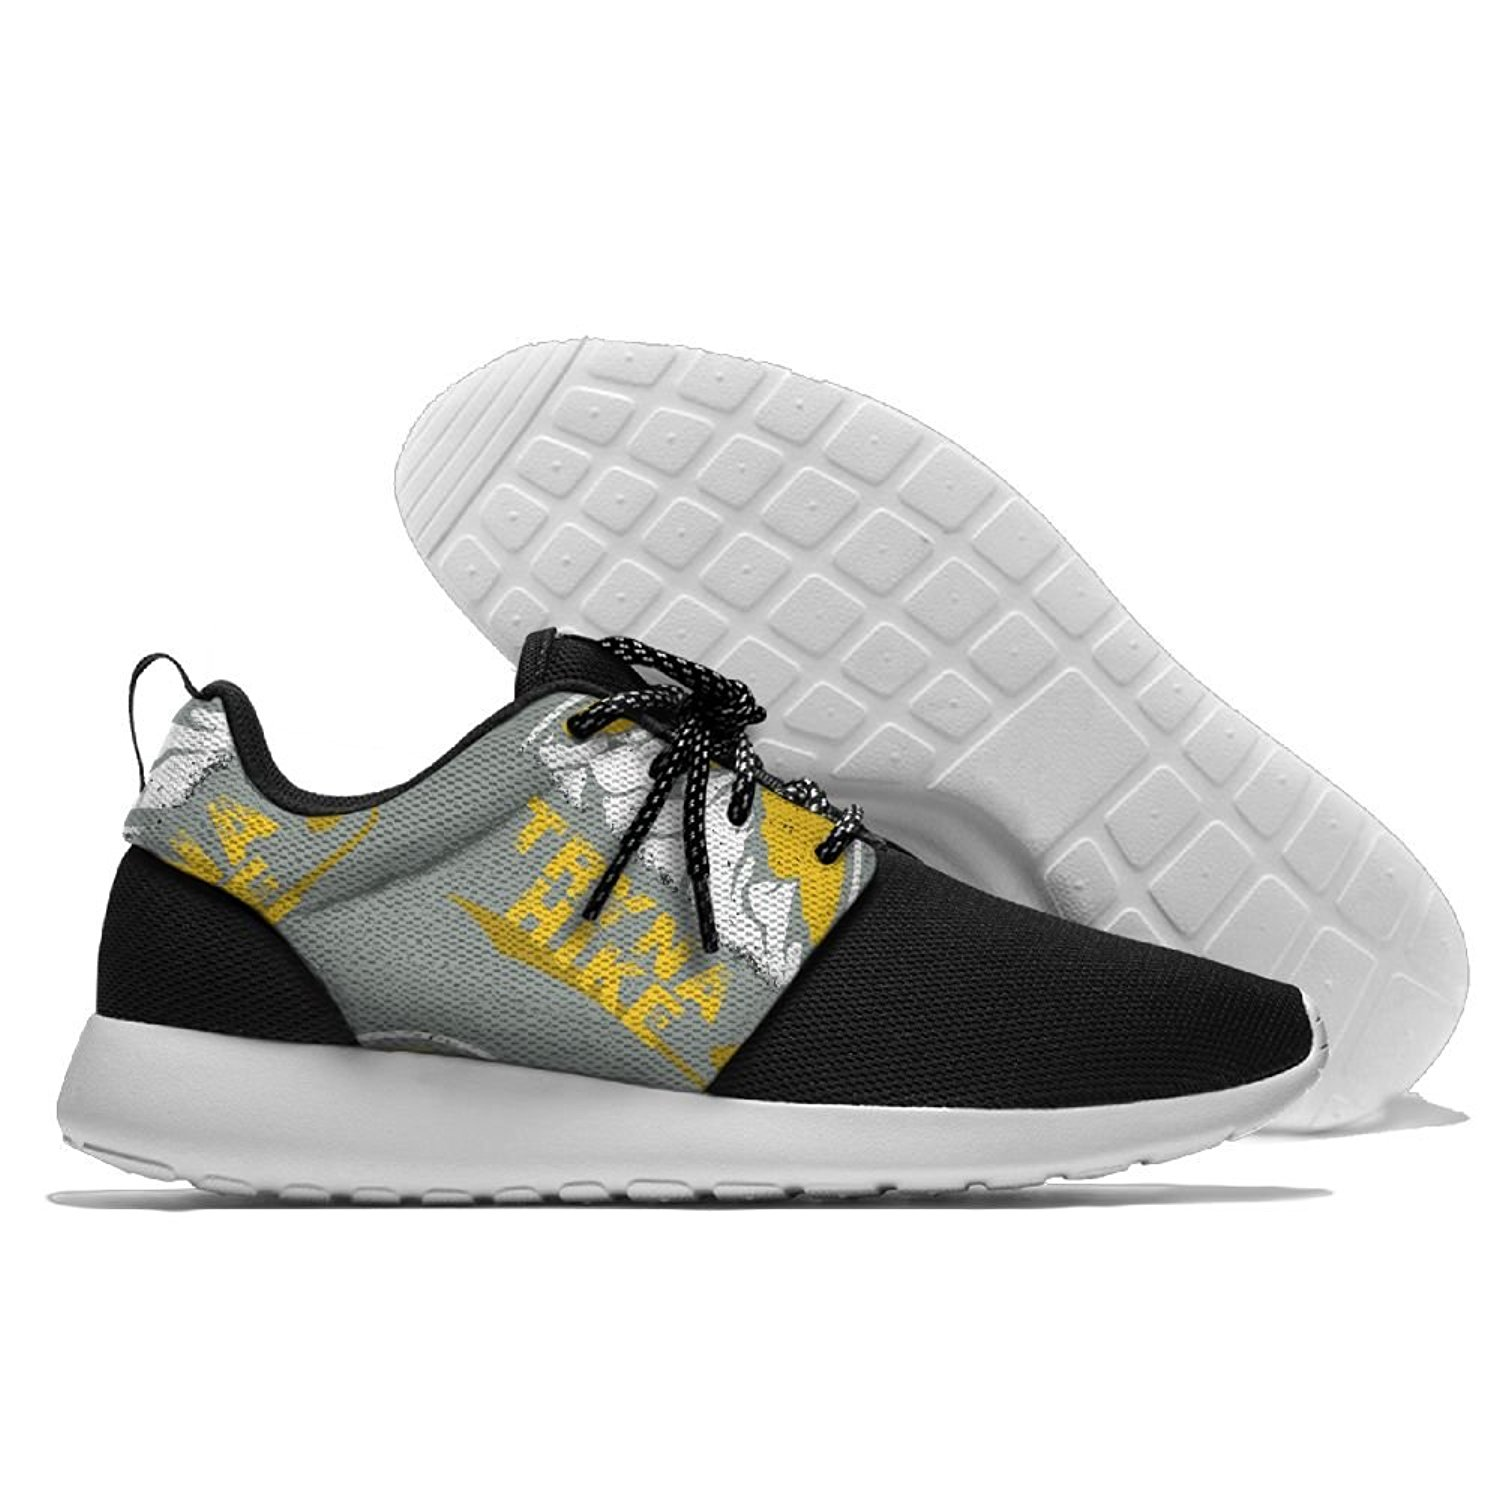 7f90b86b304c Get Quotations · Tryna Hike1 Men Athletic Leisure Shoes Running Mesh  Sneakers